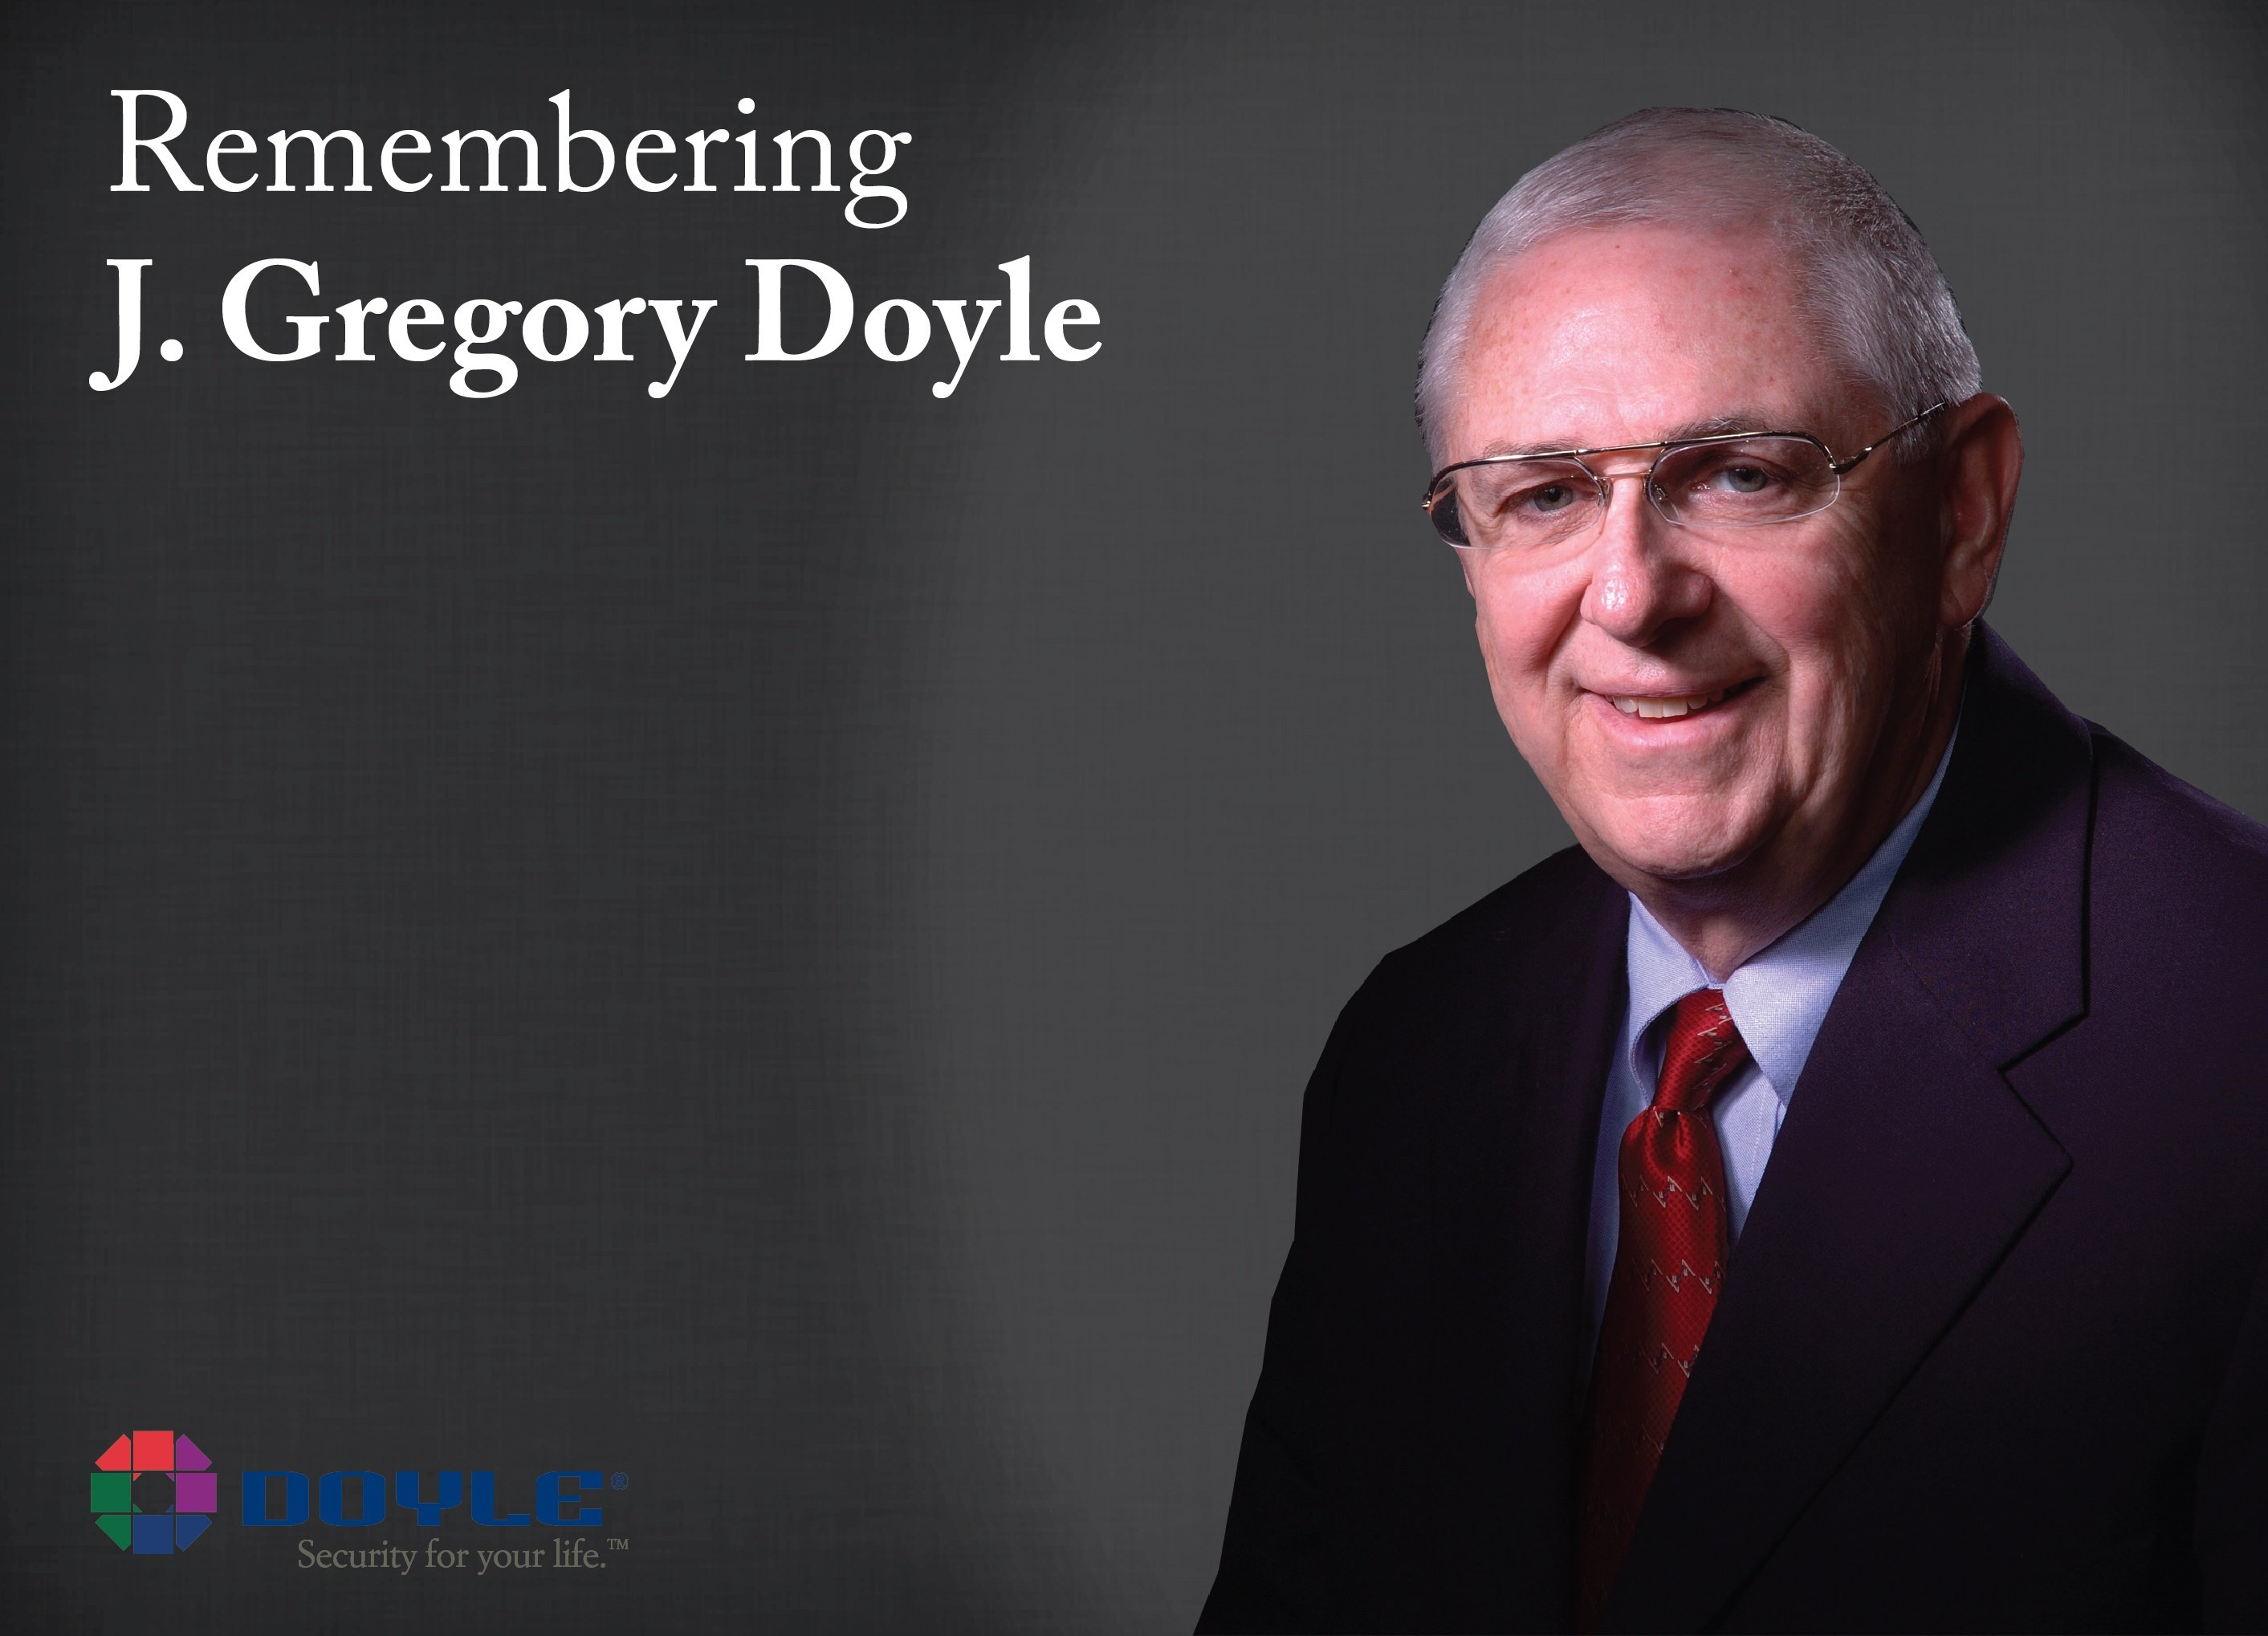 Remembering J Gregory Doyle